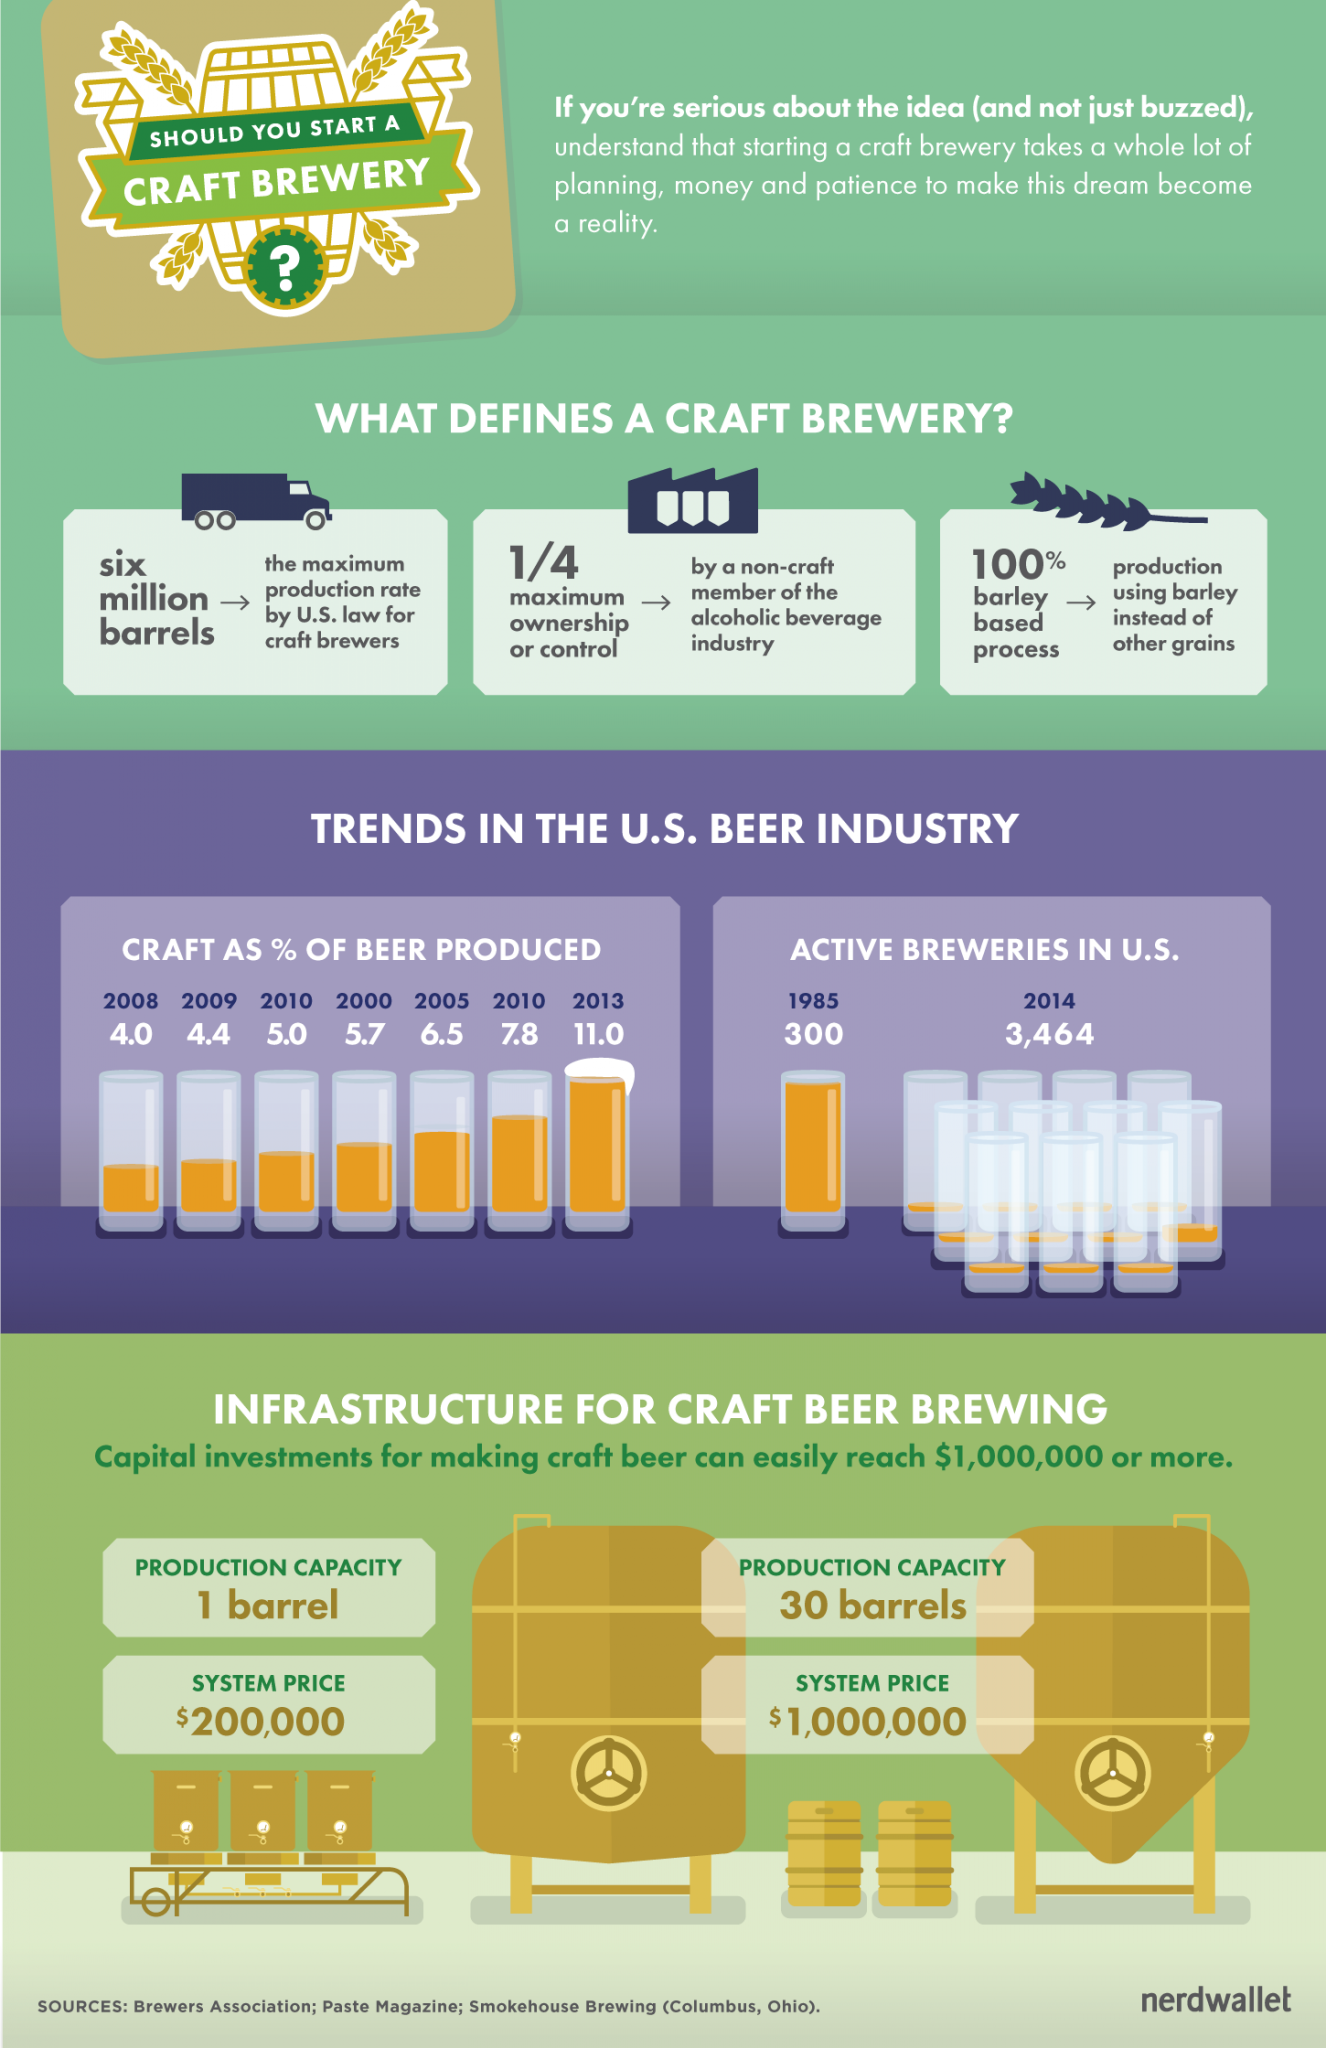 How to start a craft brewery nerdwallet for How much does it cost to have a foundation poured